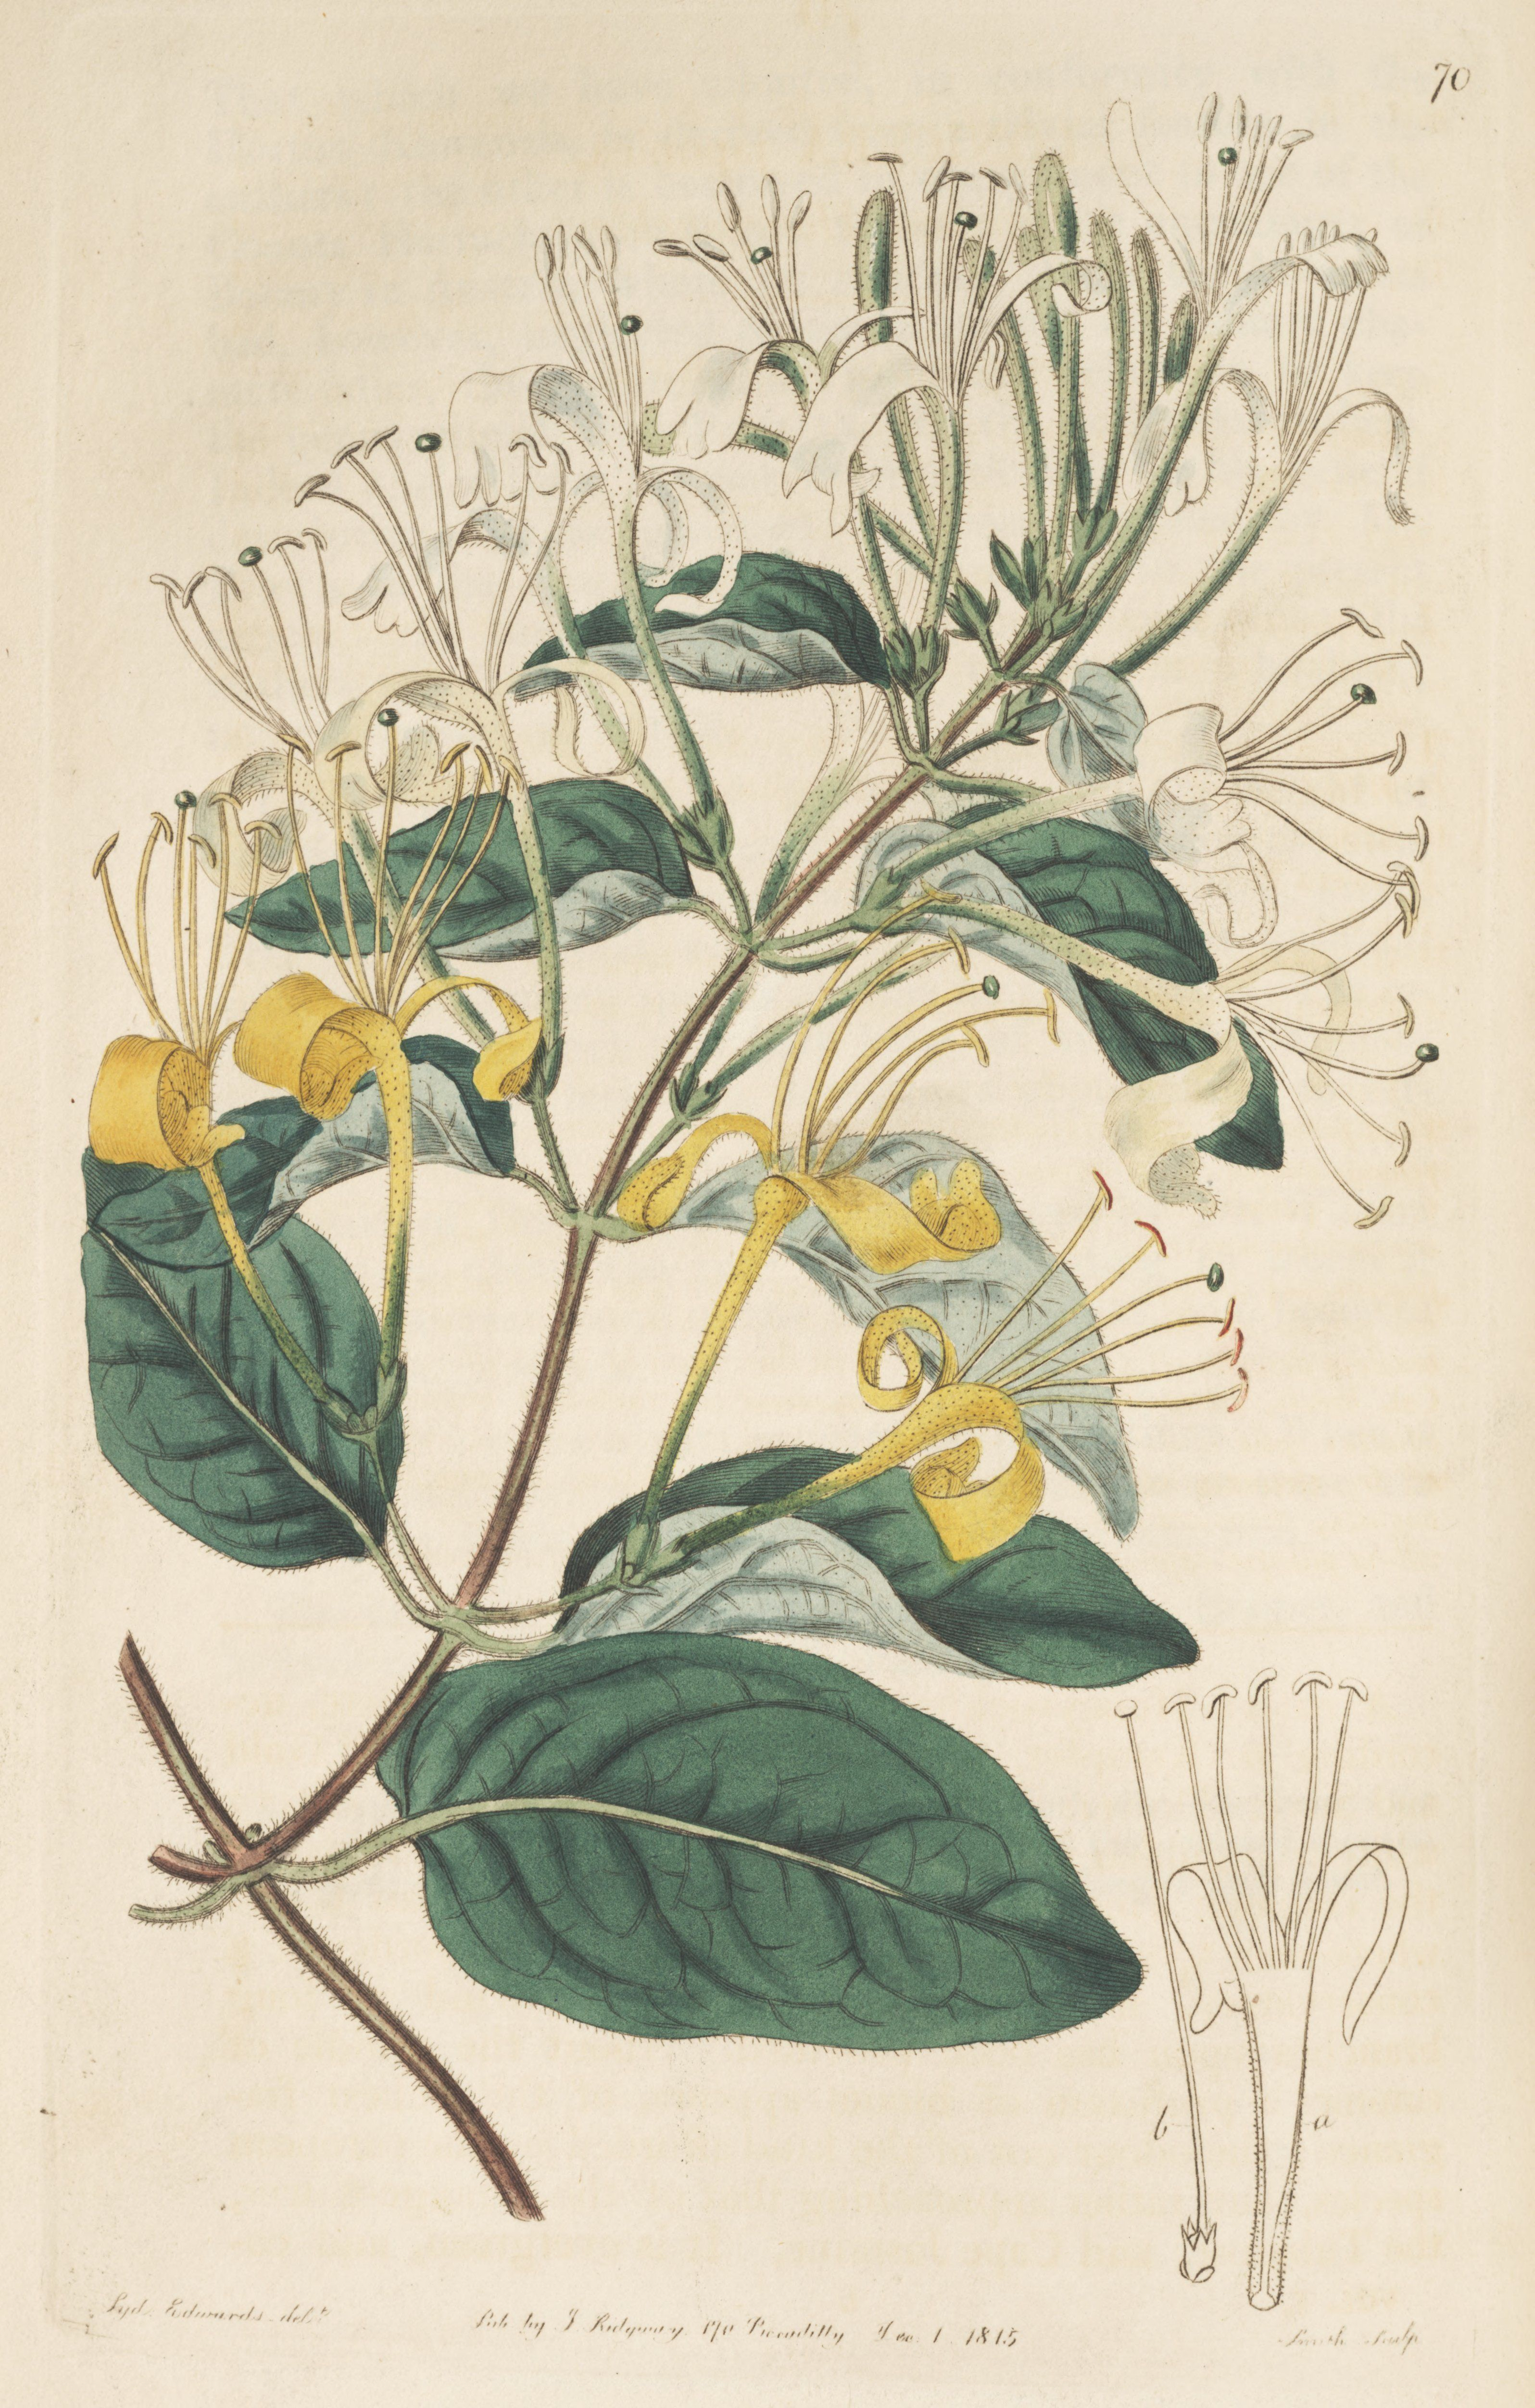 Pin By Don Mcculley On Me Time Botanical Drawings Scientific Illustration Botanical Illustration